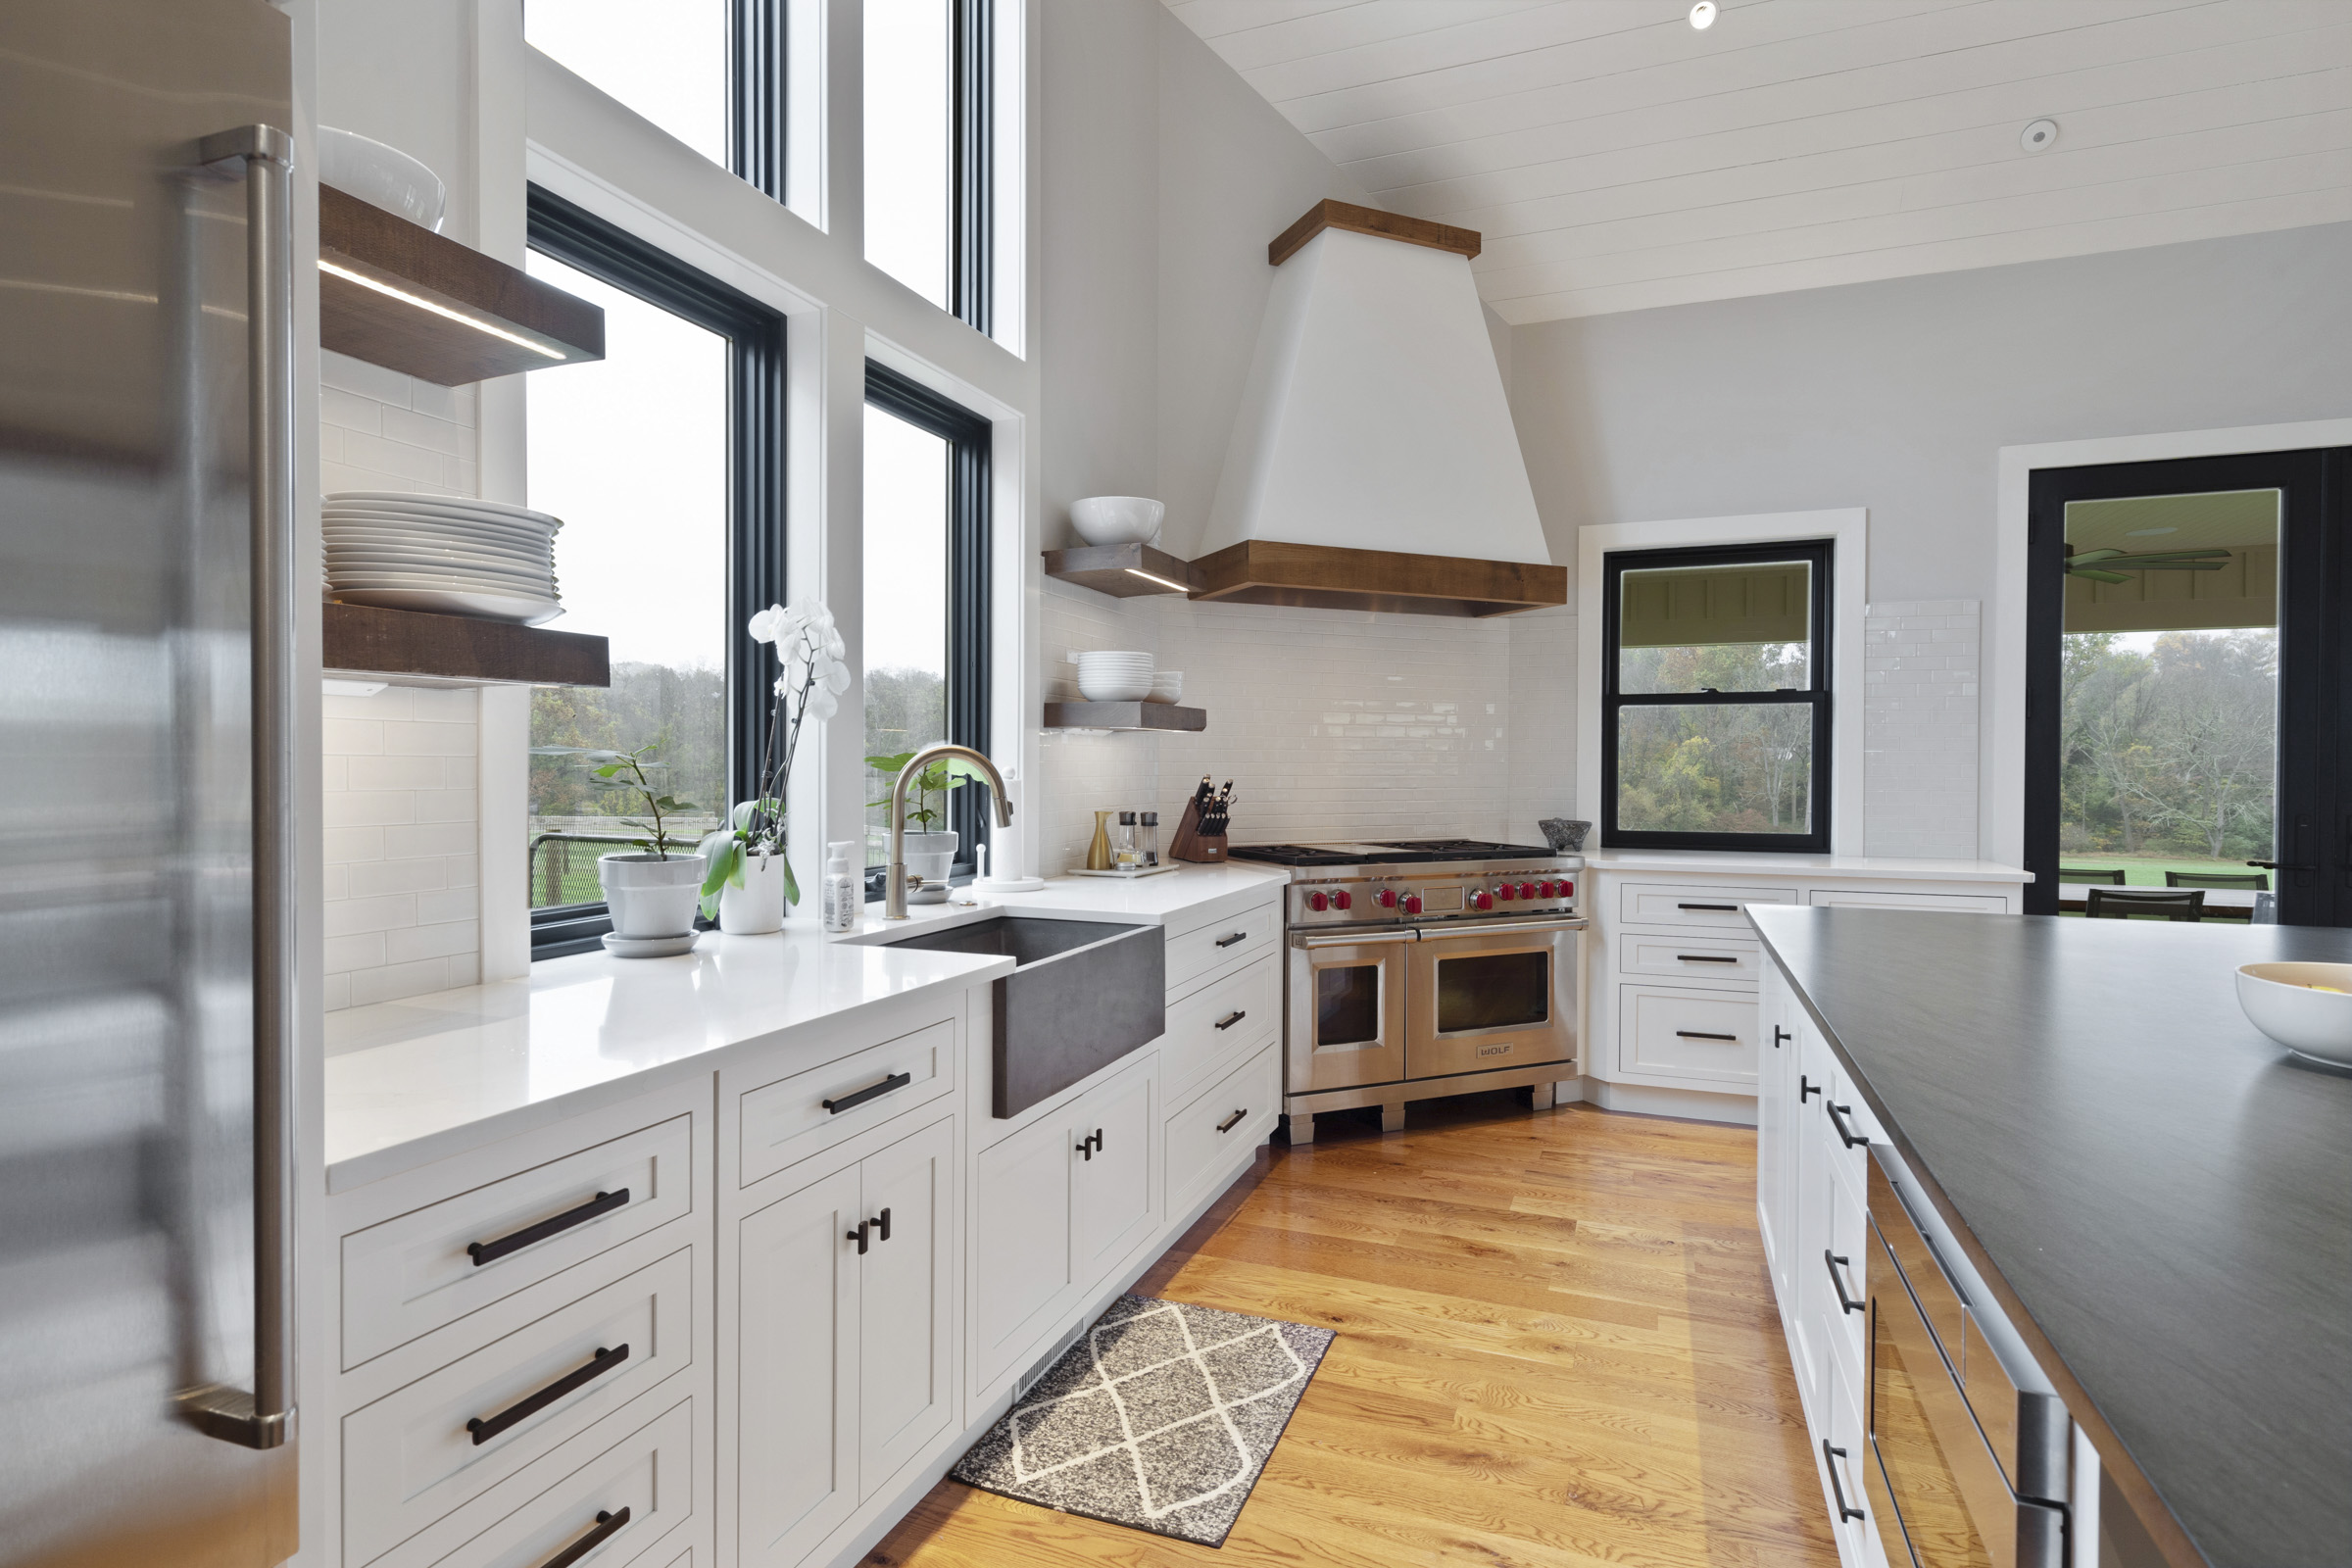 Kitchen with large windows and accent lighting